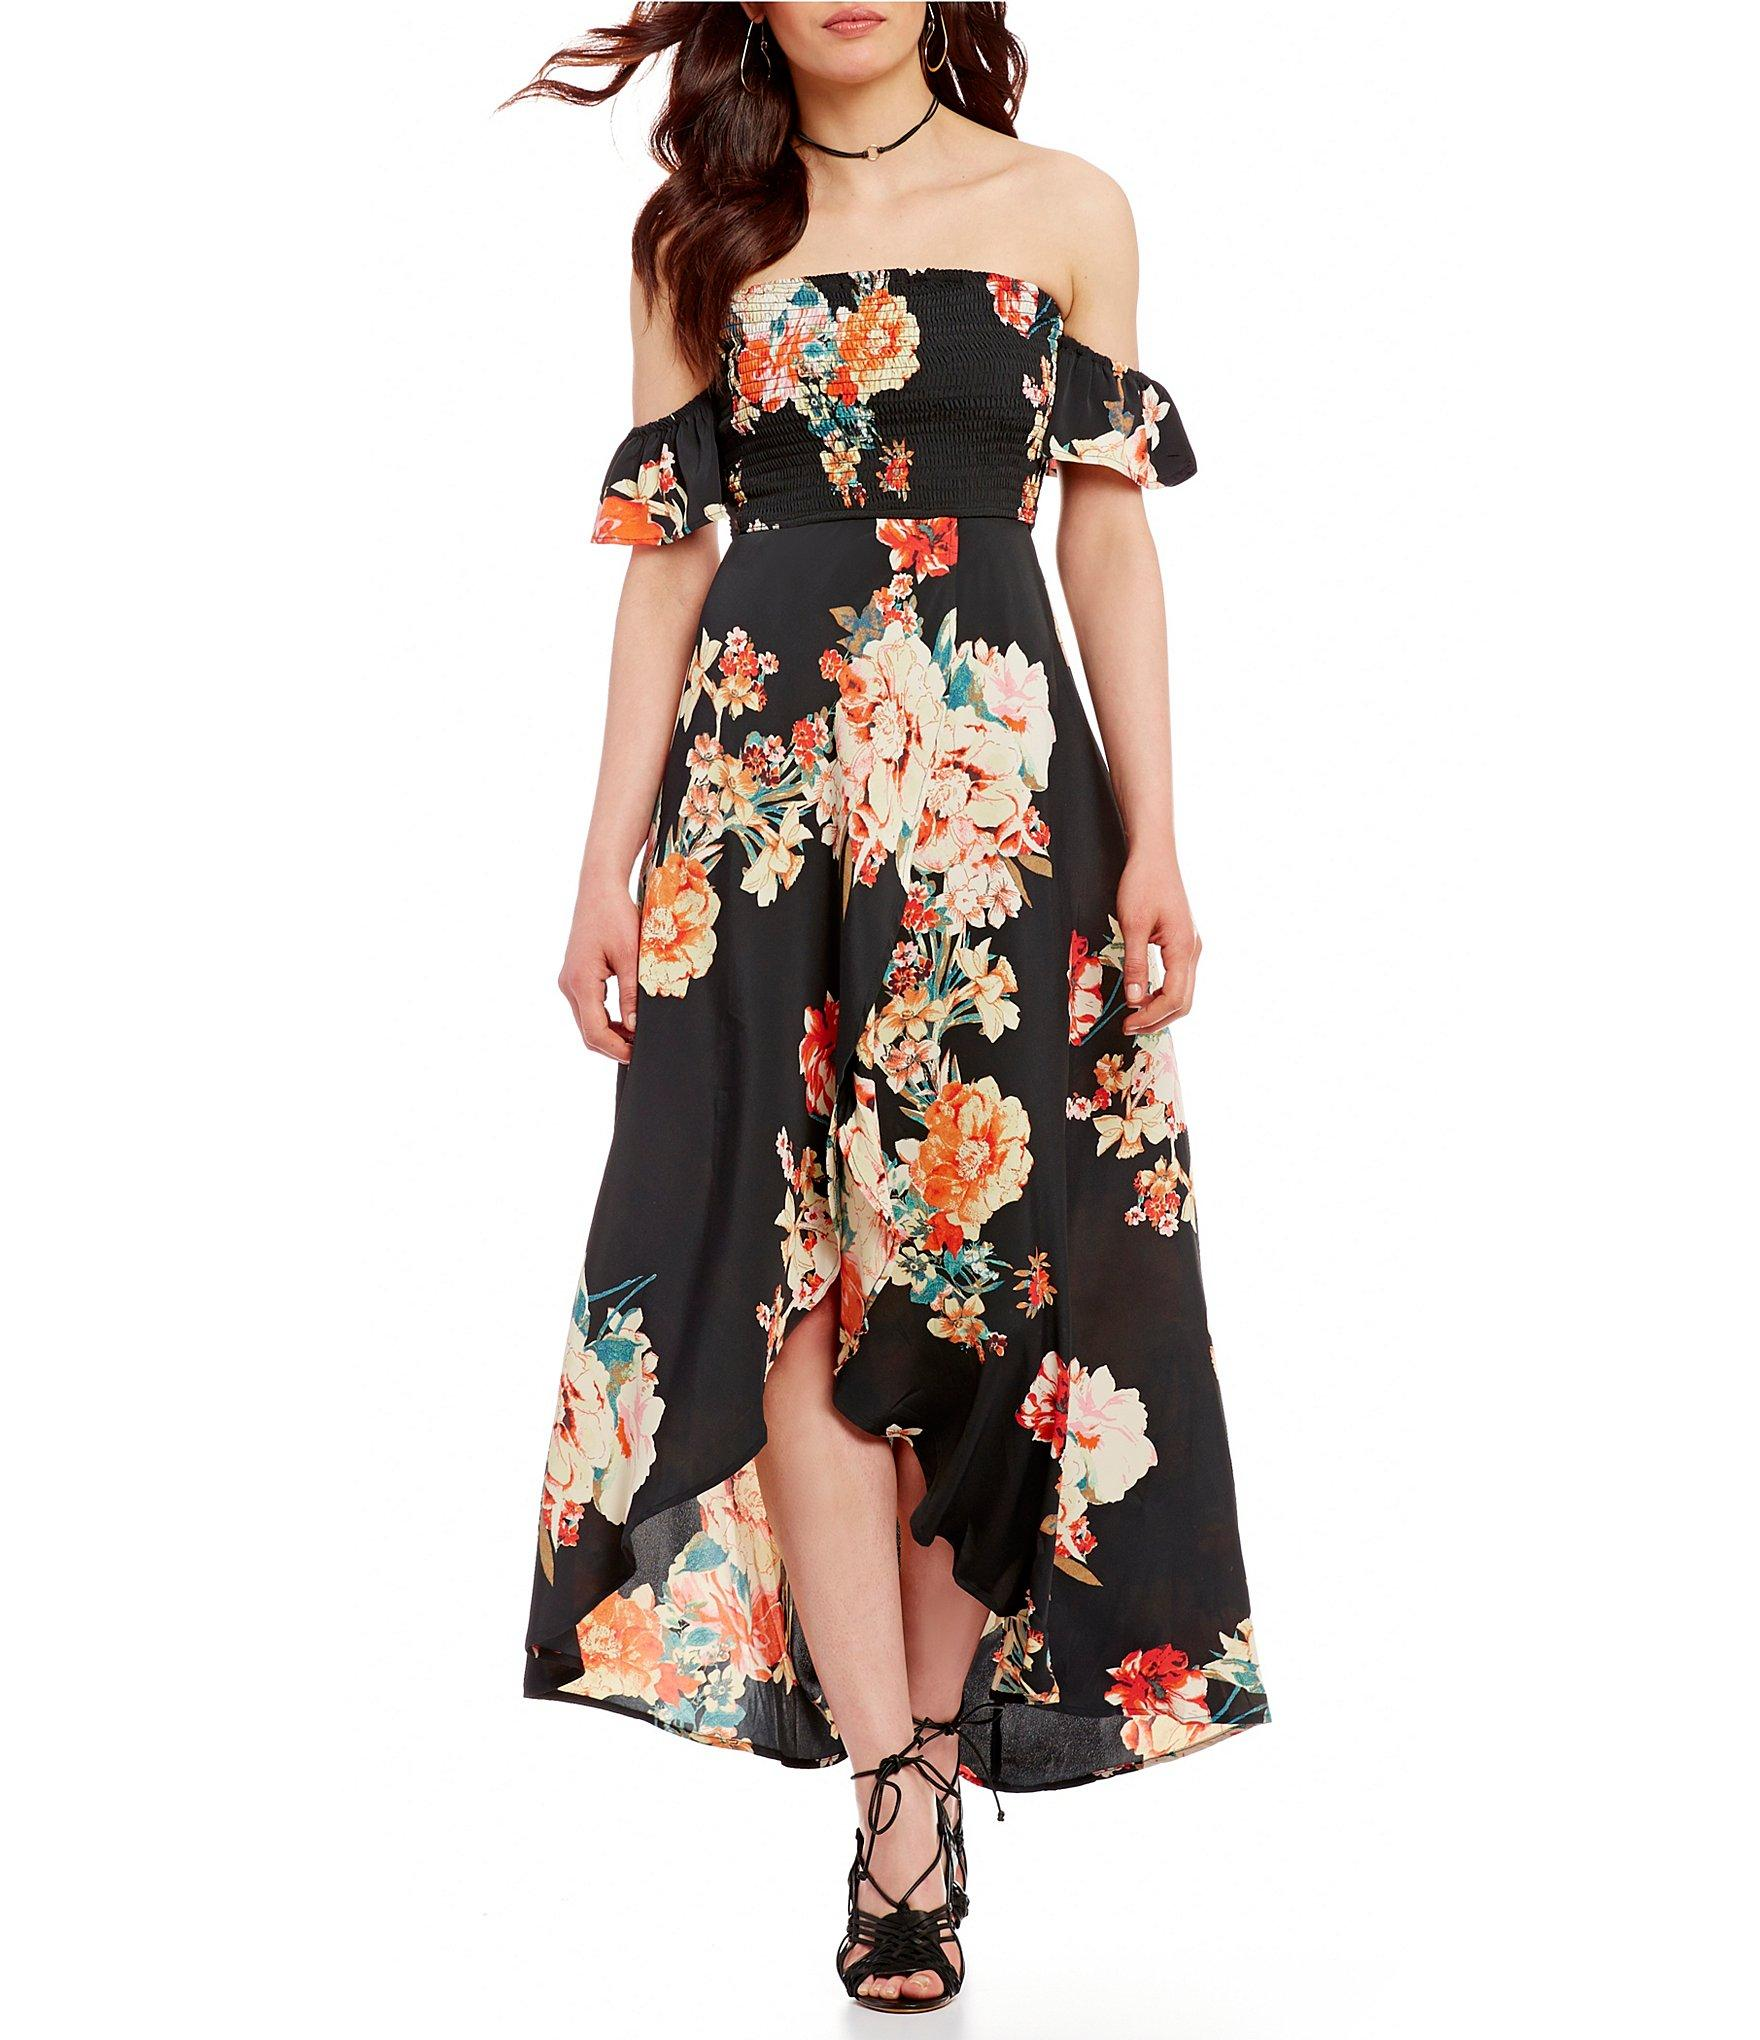 a7955736e49 Band Of Gypsies Off-the-shoulder Smocked Floral Maxi Dress in Black ...